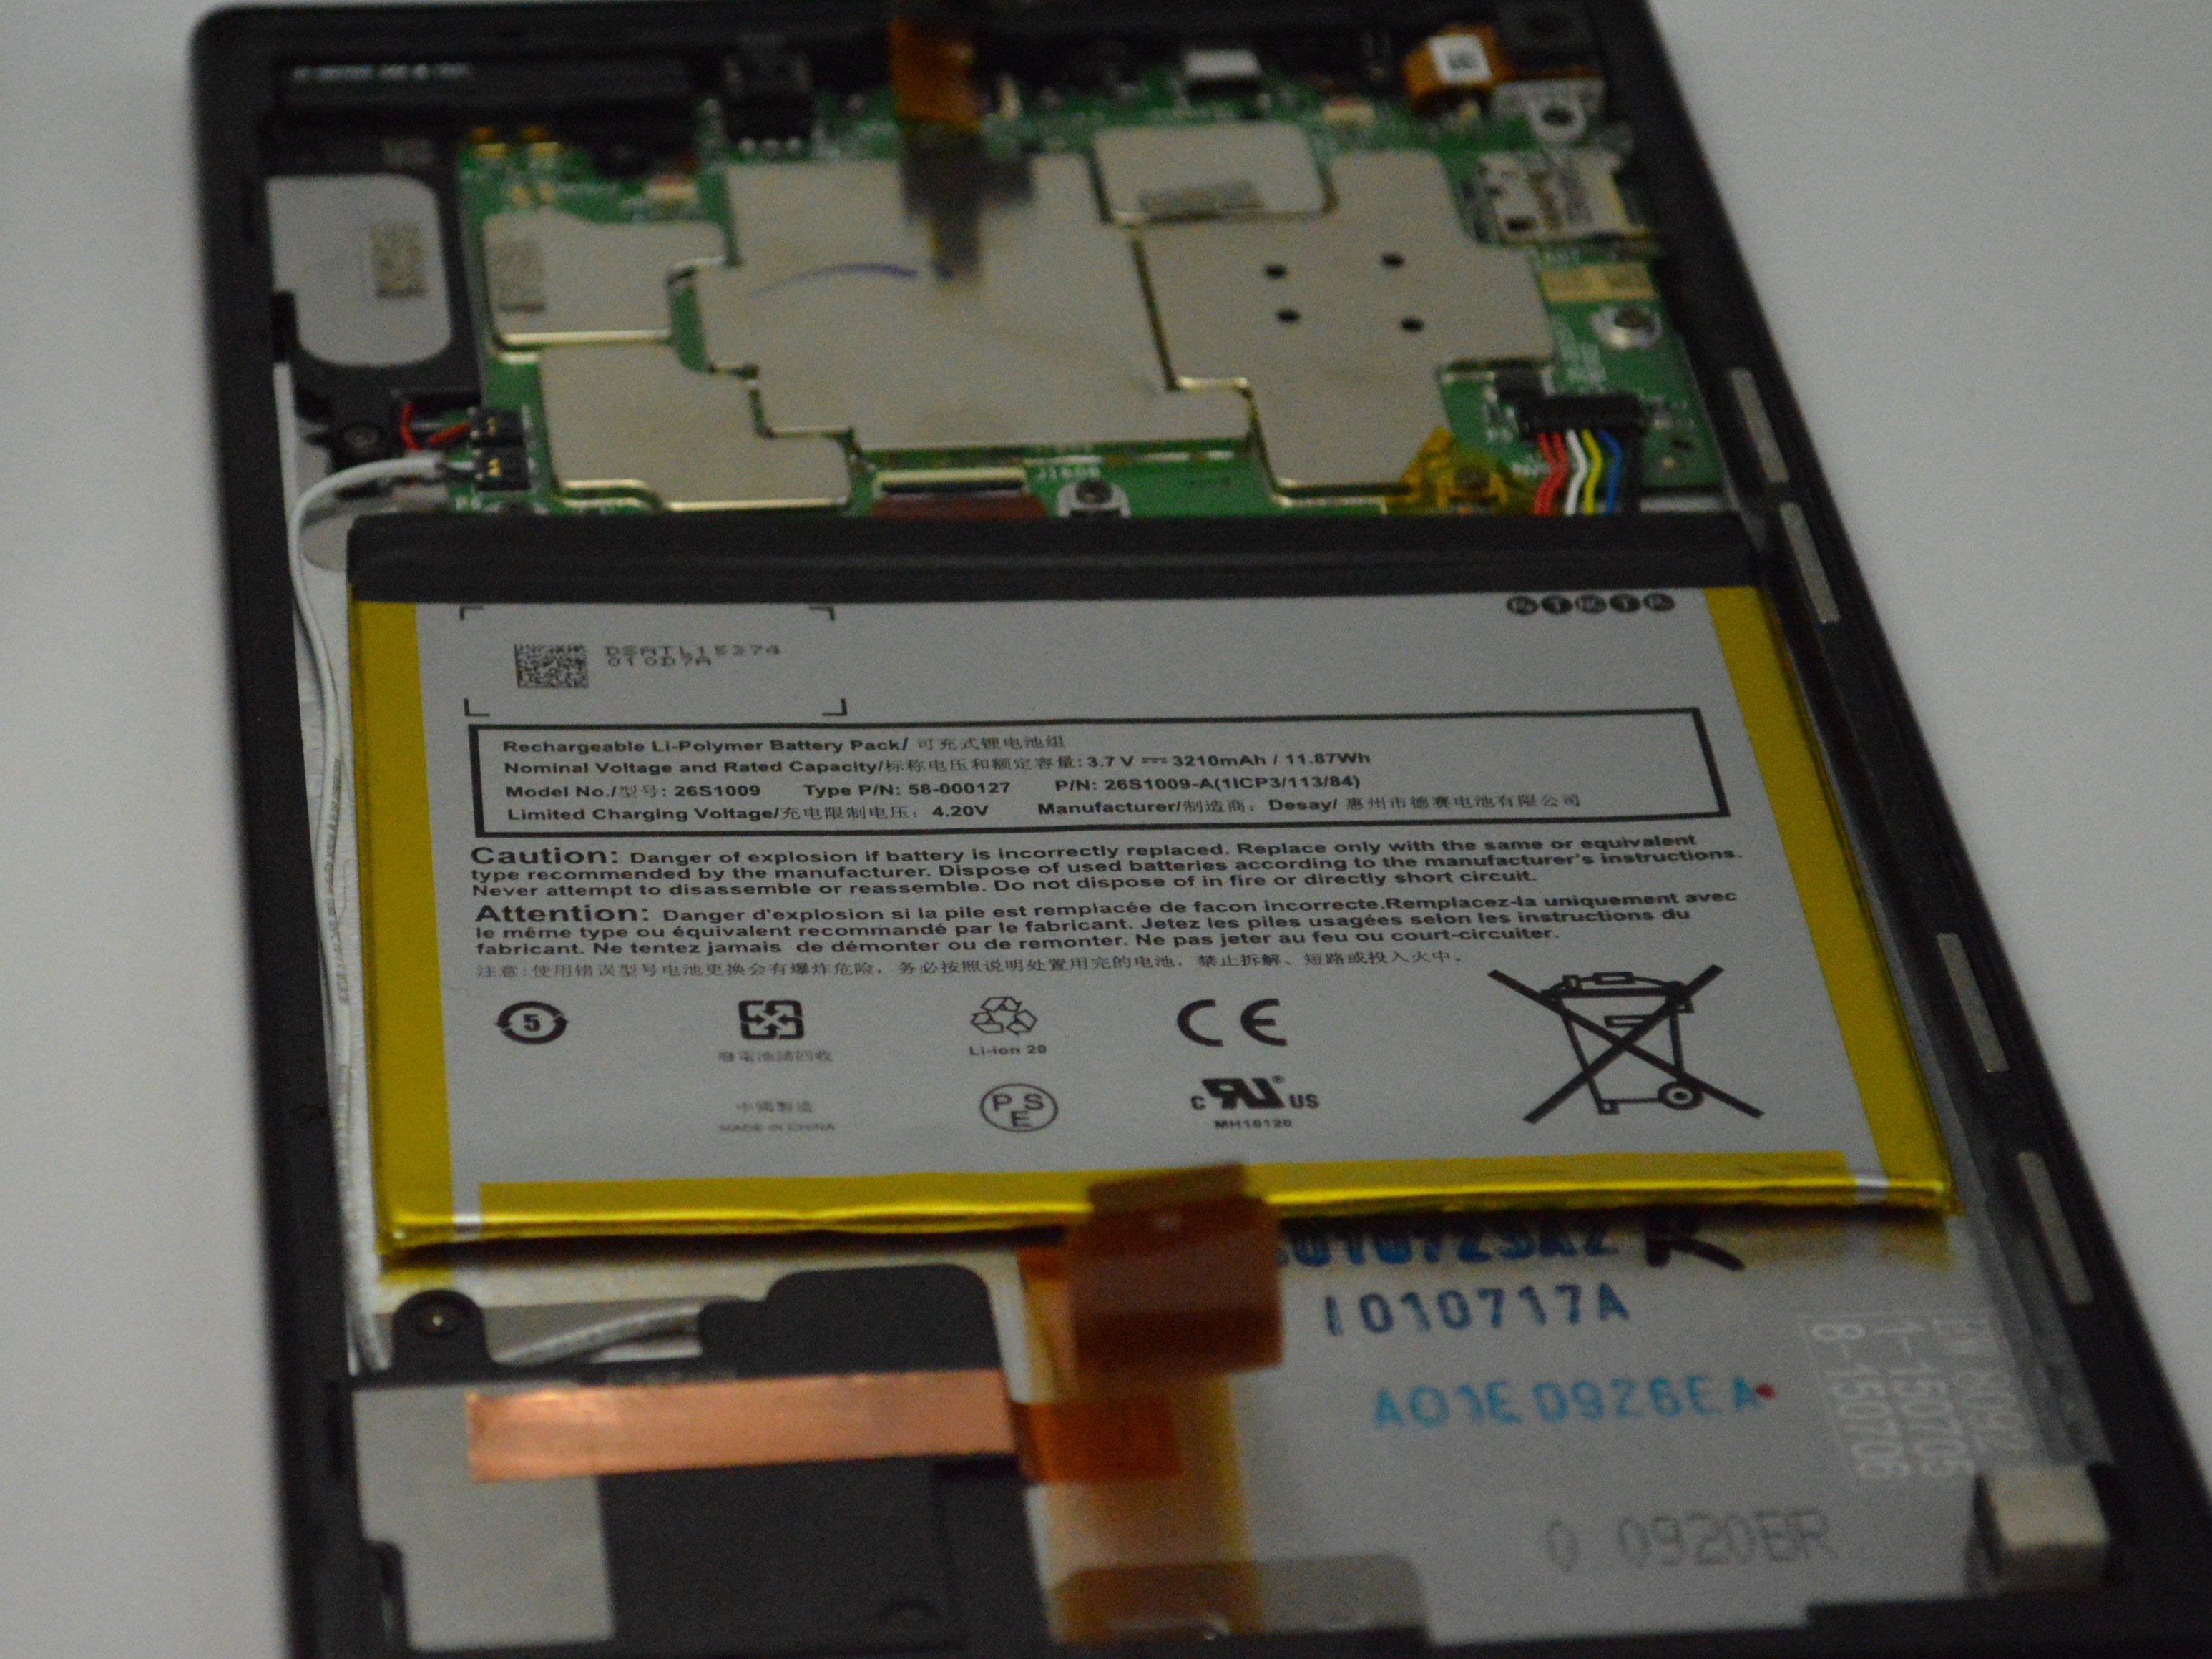 sua3000rm2u battery replacement instructions